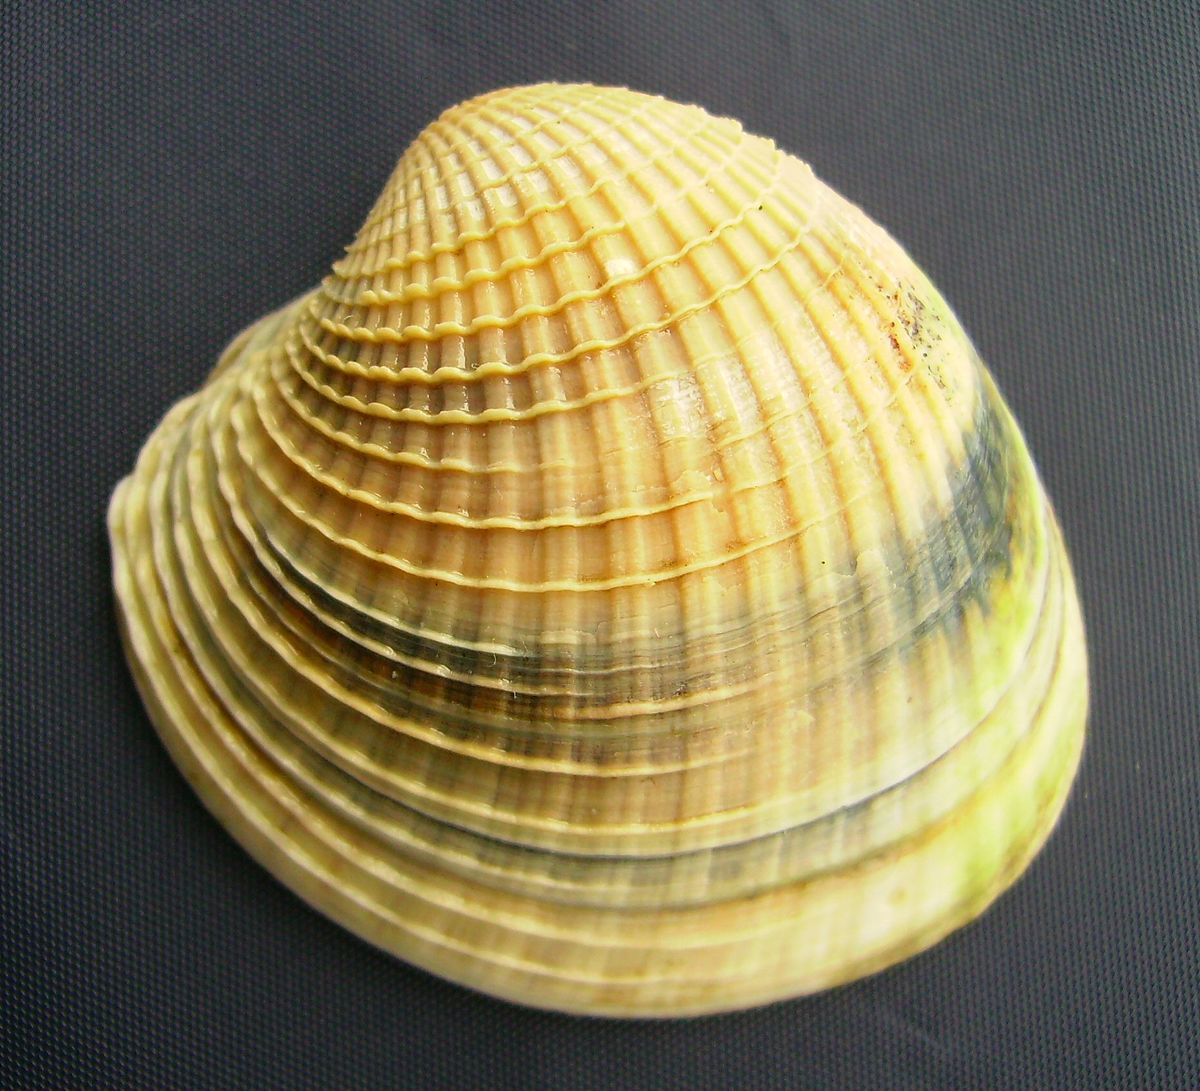 study of the bivalve mollusc cockles In this study, seven species of bivalves (bloody cockle, japanese cockle, surf clam, razor clam, horse clam, short-neck clam and japanese oyster) were confirmed to be allergenic by enzyme-linked immunosorbent assay (elisa) and their major allergens were identified as tropomyosin by immunoblotting.